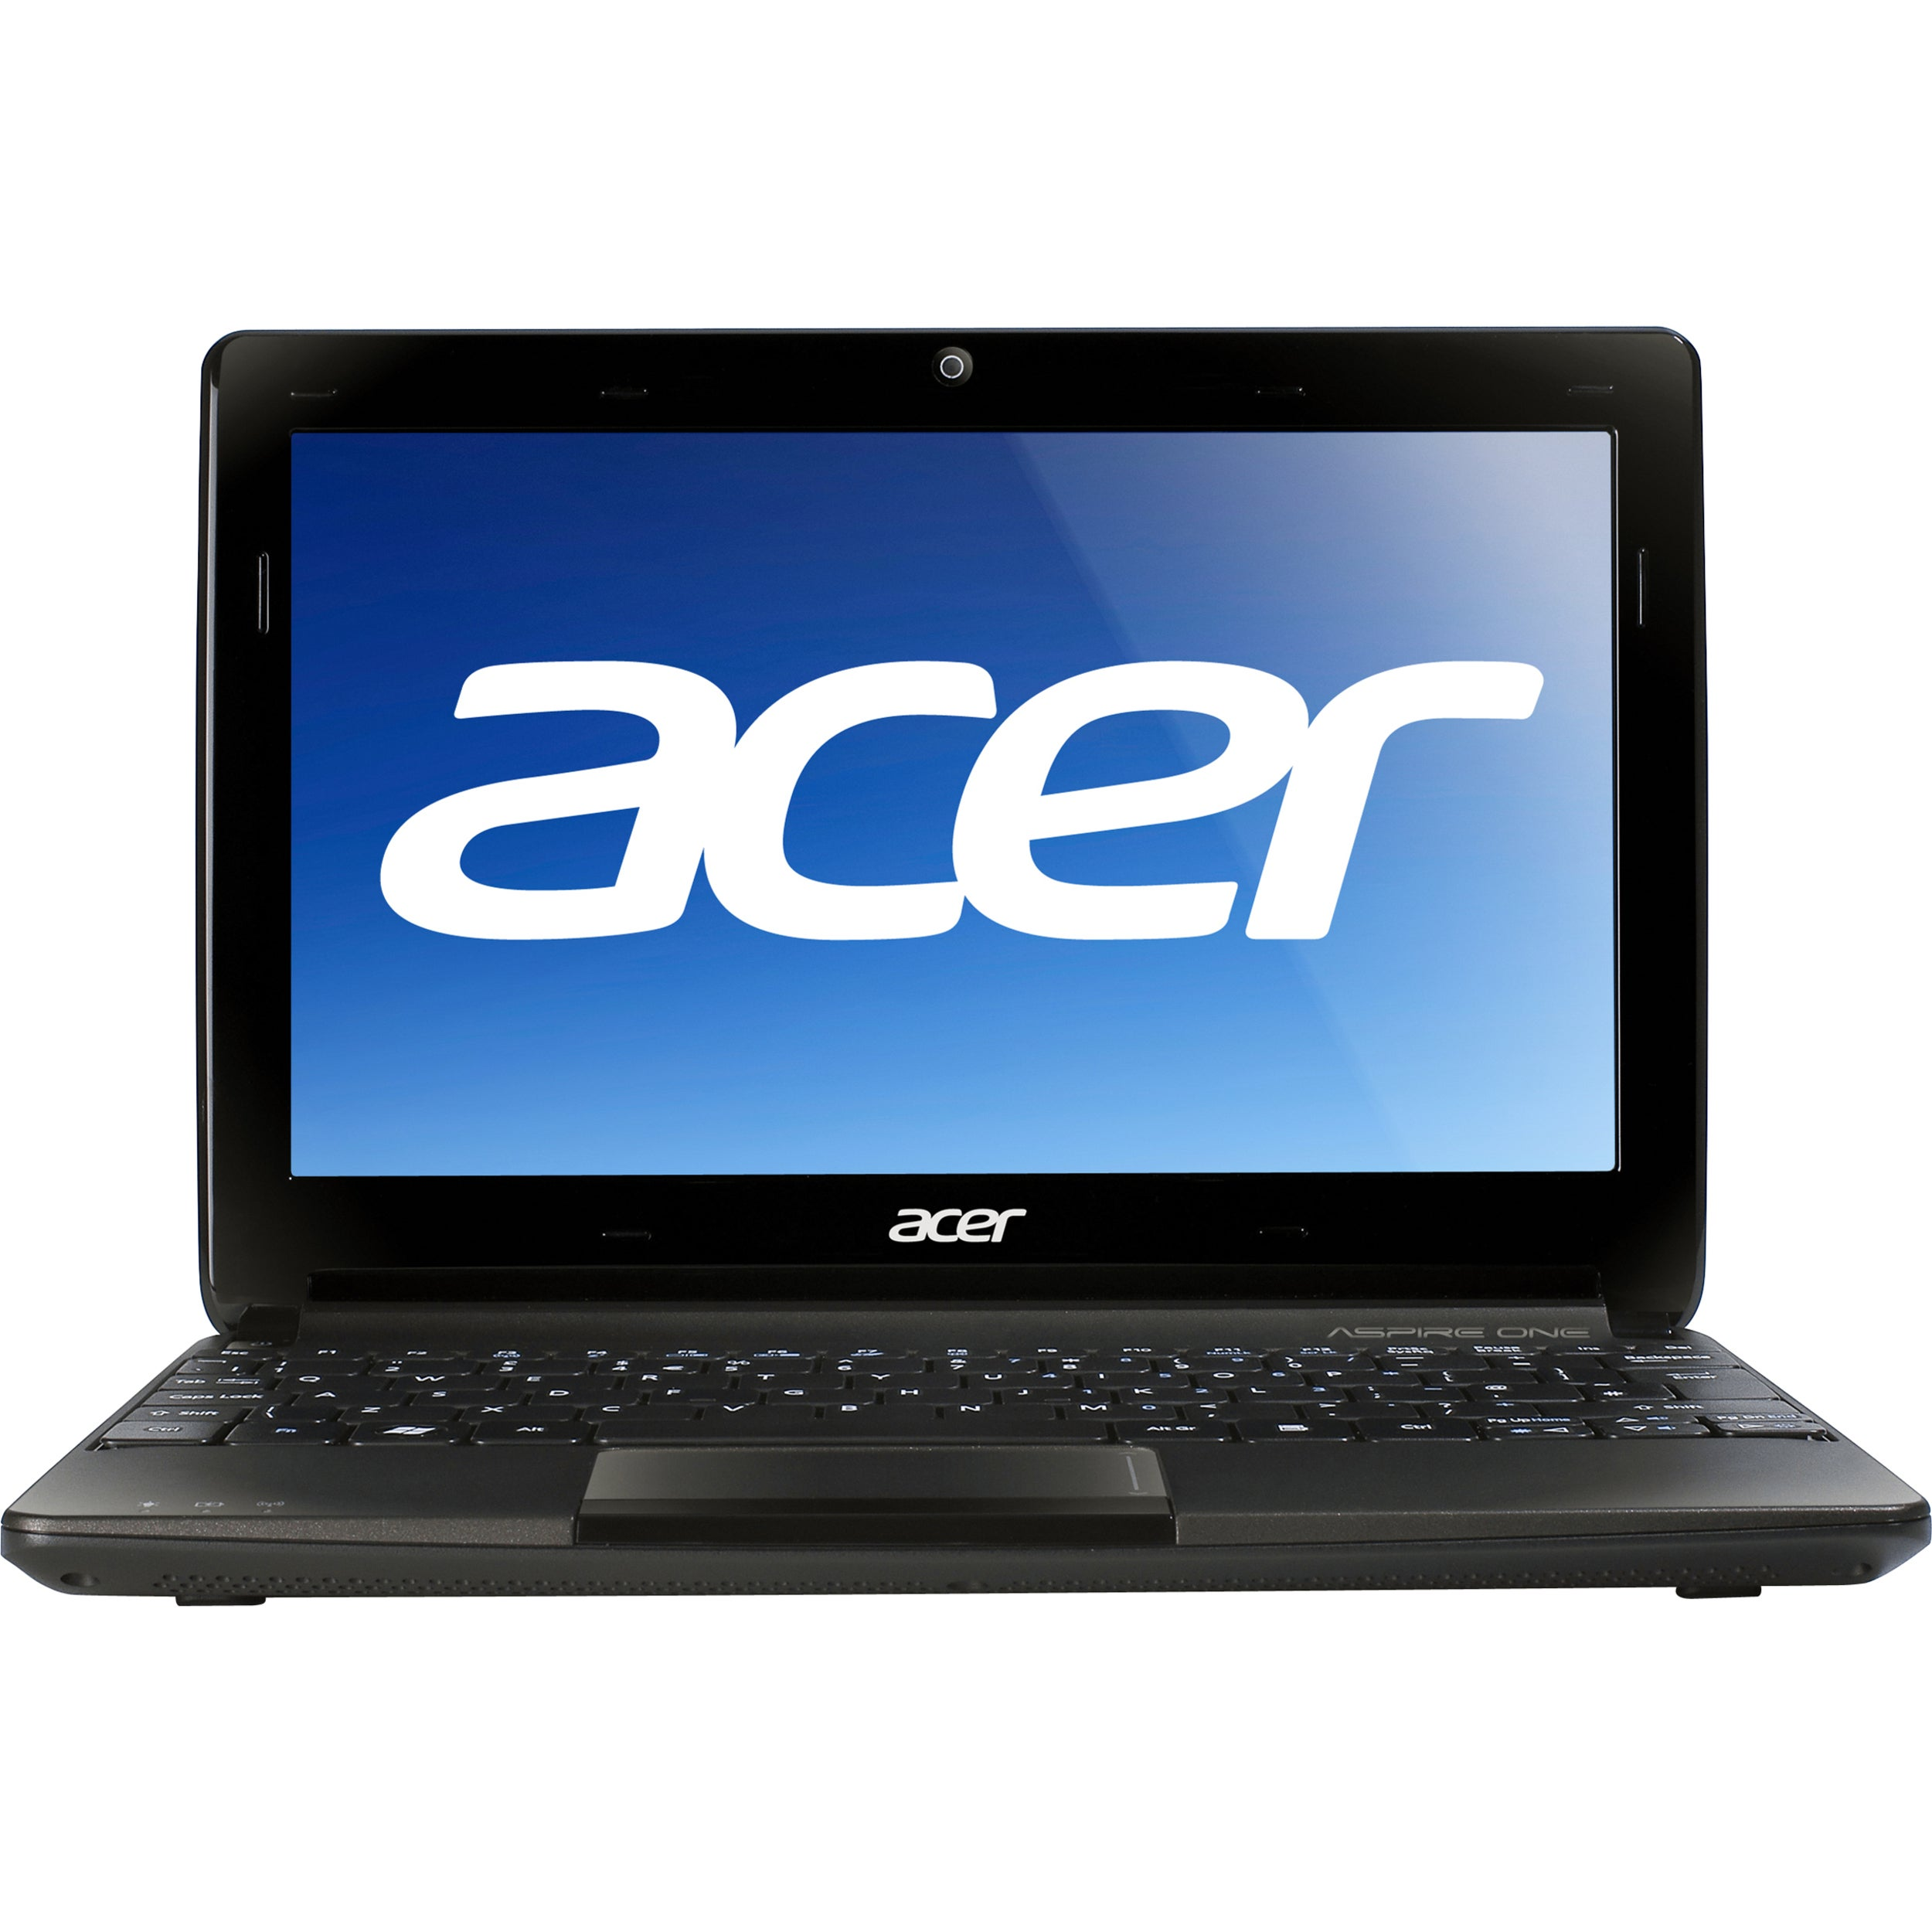 "Acer Aspire One D270 AOD270-26Dkk 10.1"" 128:75 Netbook - 1024 x 600 -"